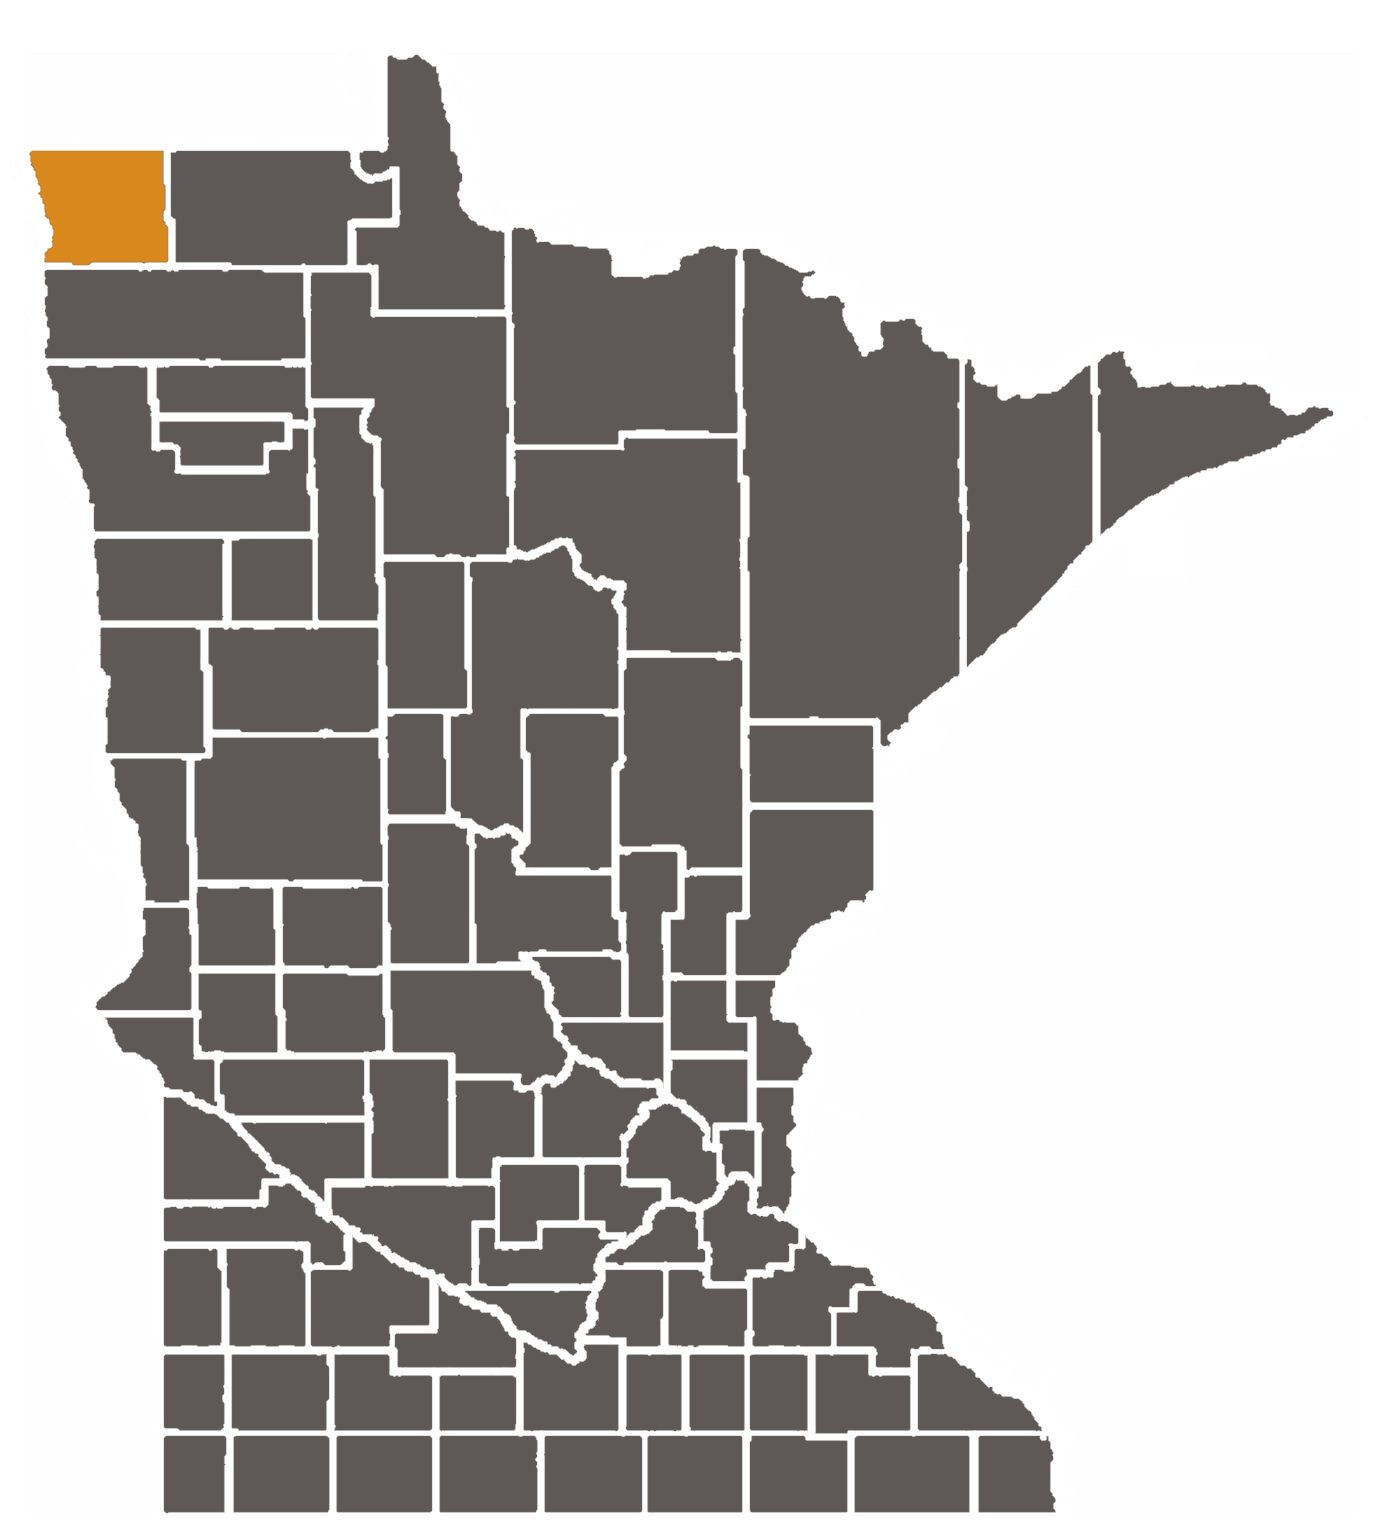 Minnesota map with Kittson County highlighted.